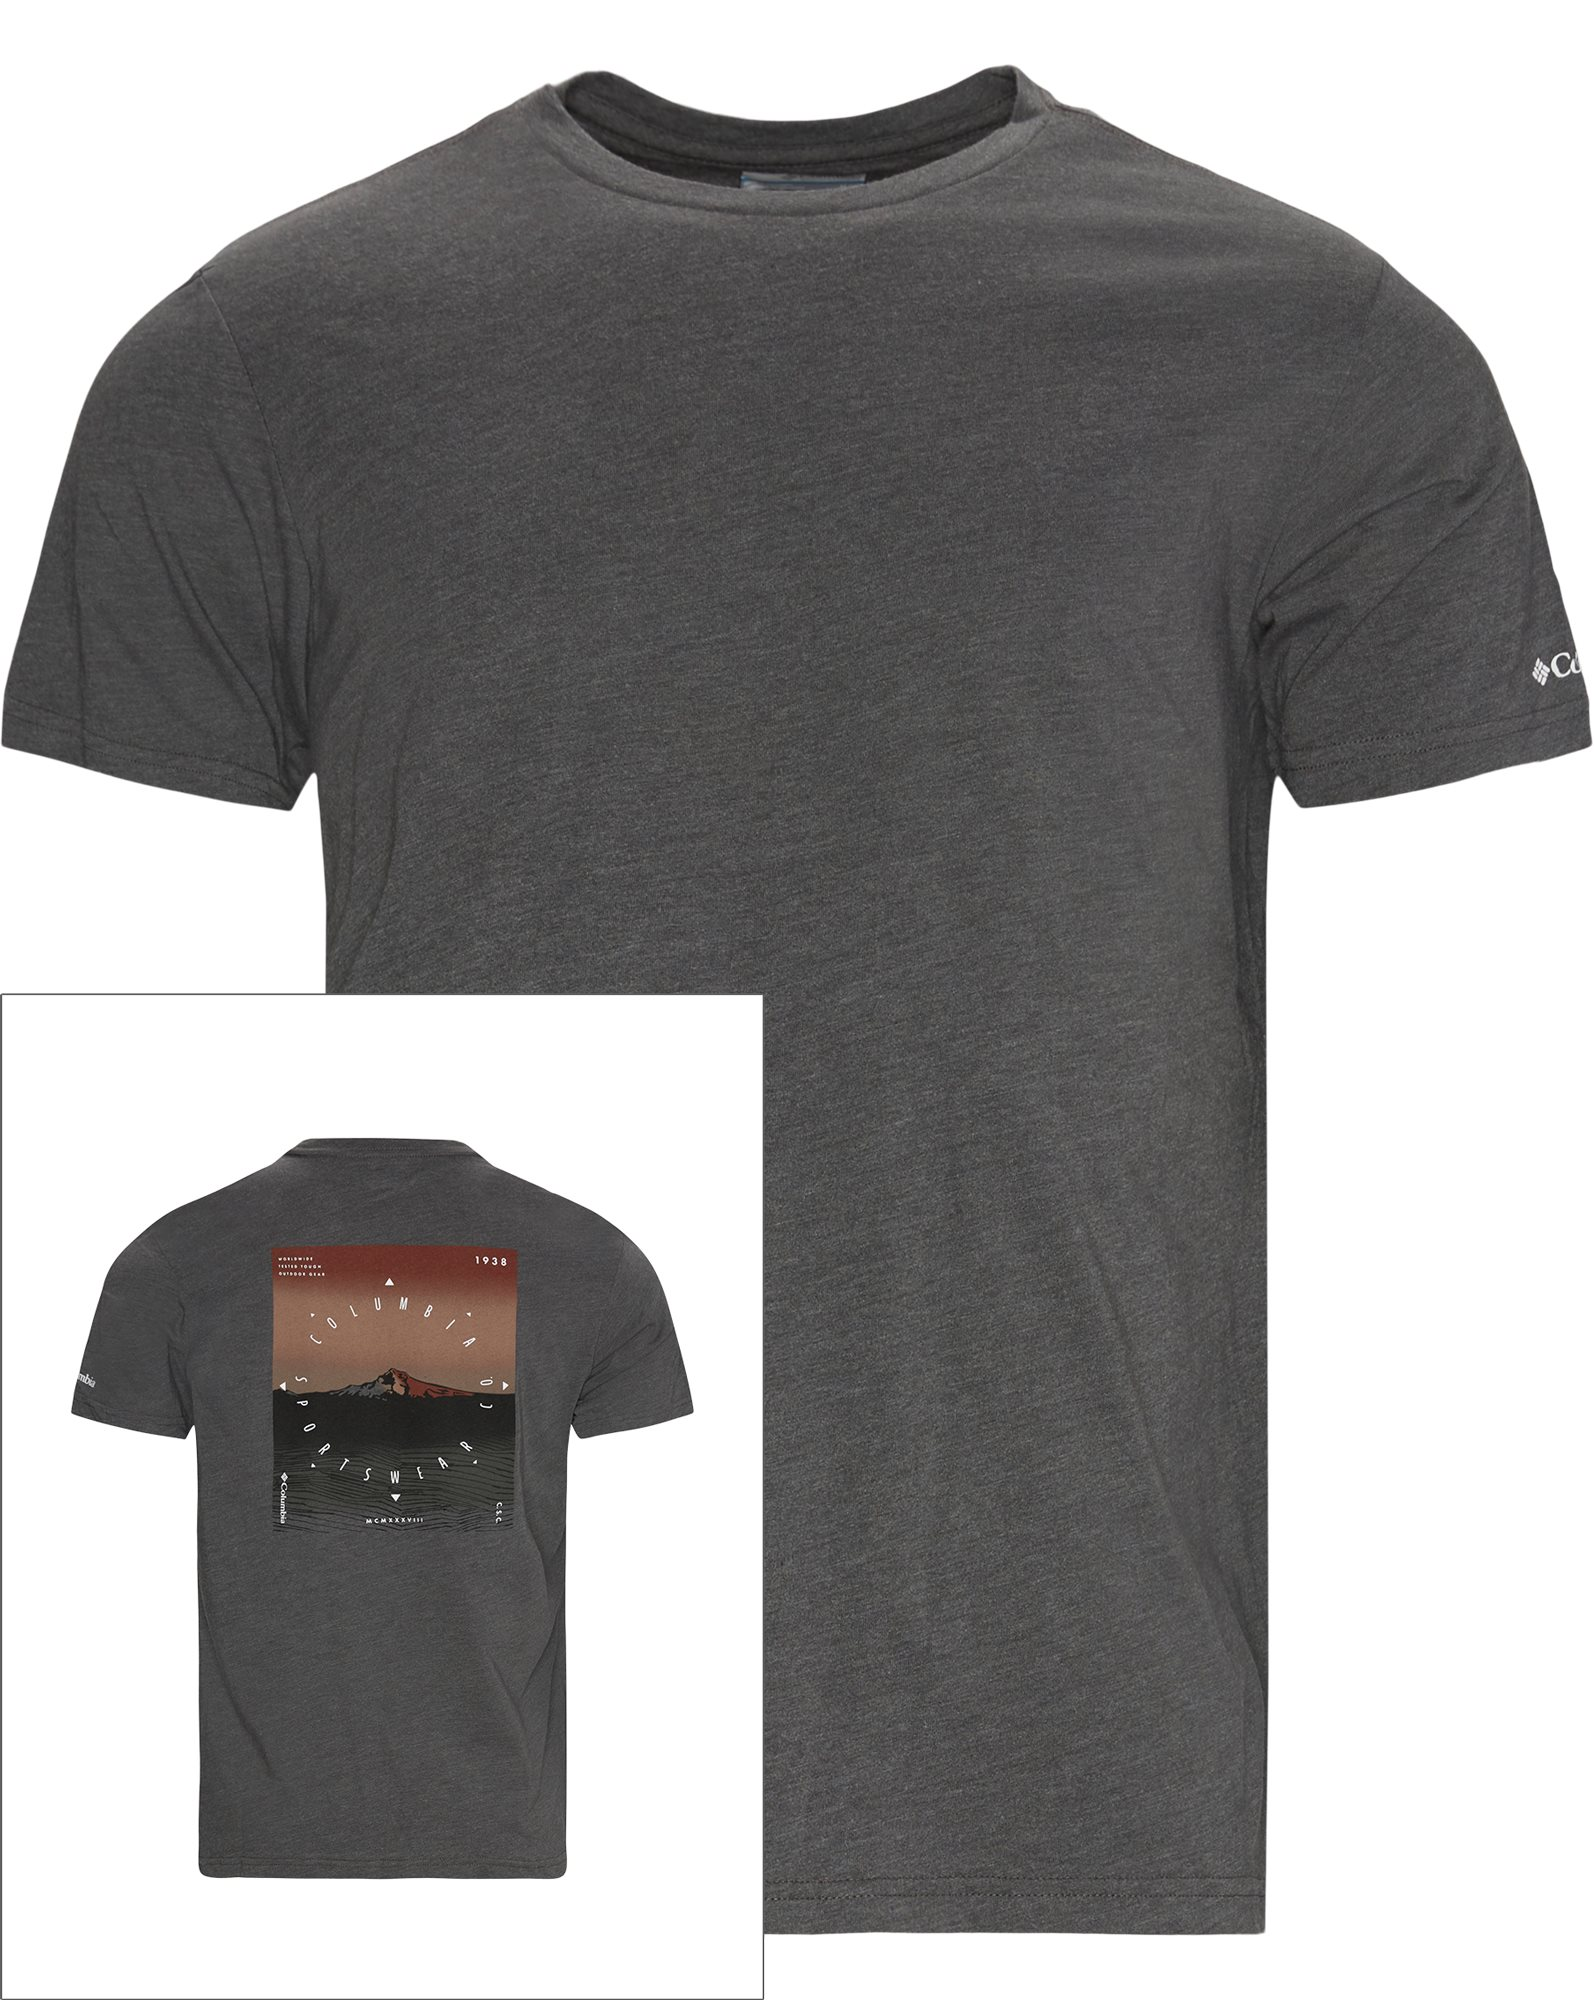 High Dune Tee - T-shirts - Regular - Grå